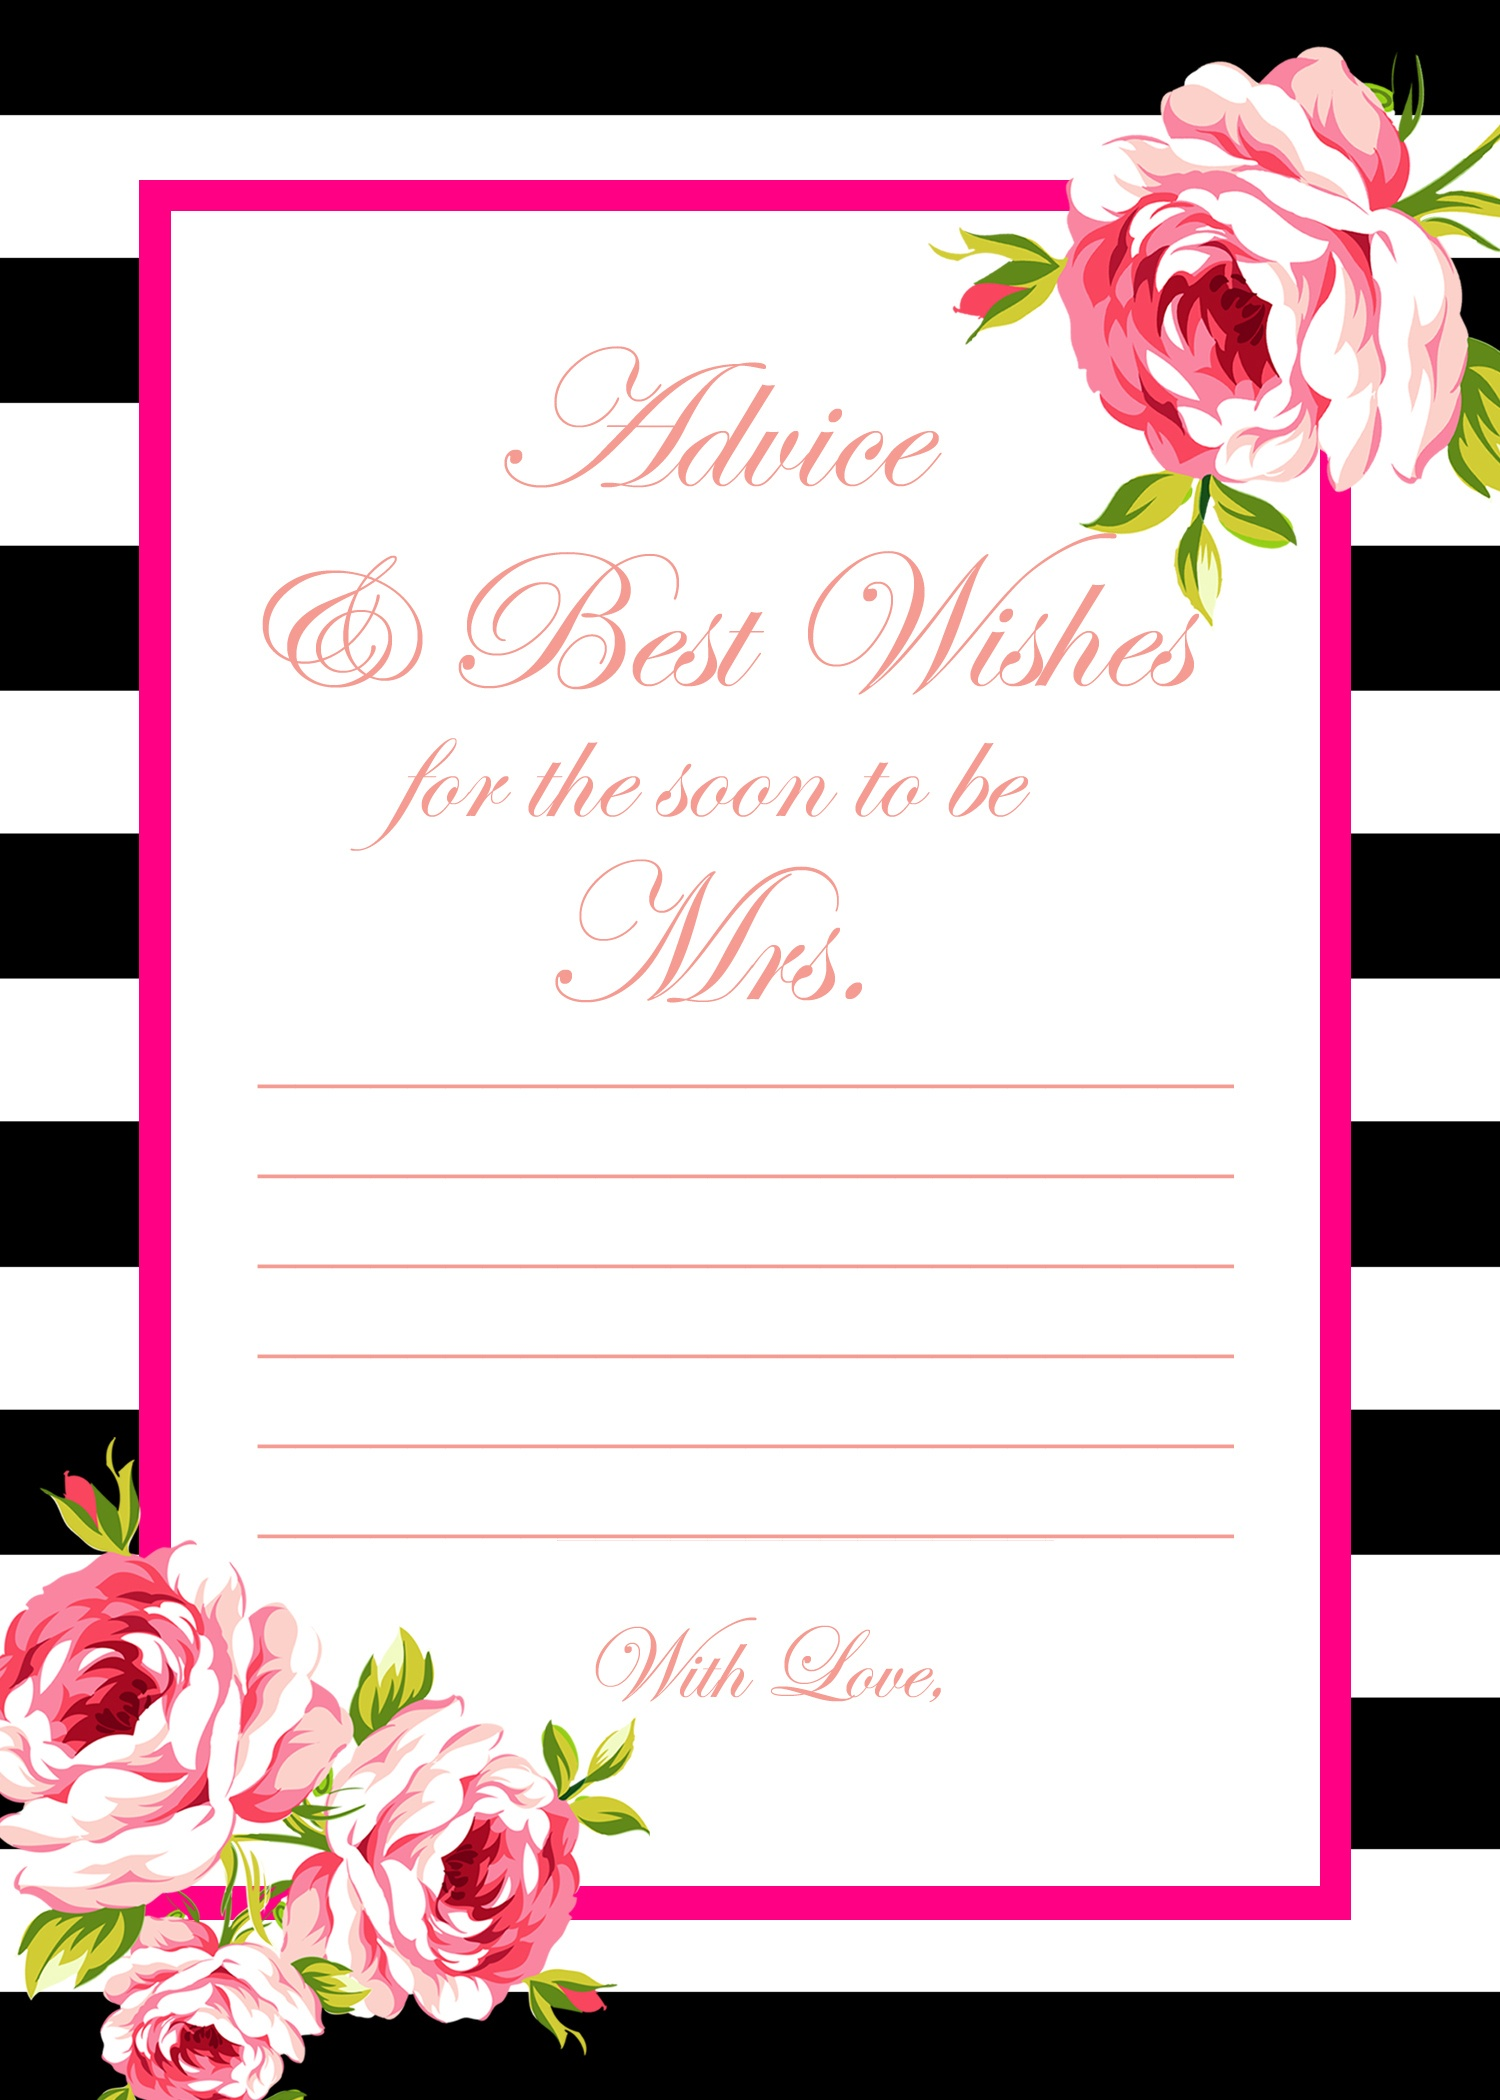 2_Free_Printable_Games Archives - Bridal Shower Ideas - Themes - How Well Do You Know The Bride Free Printable